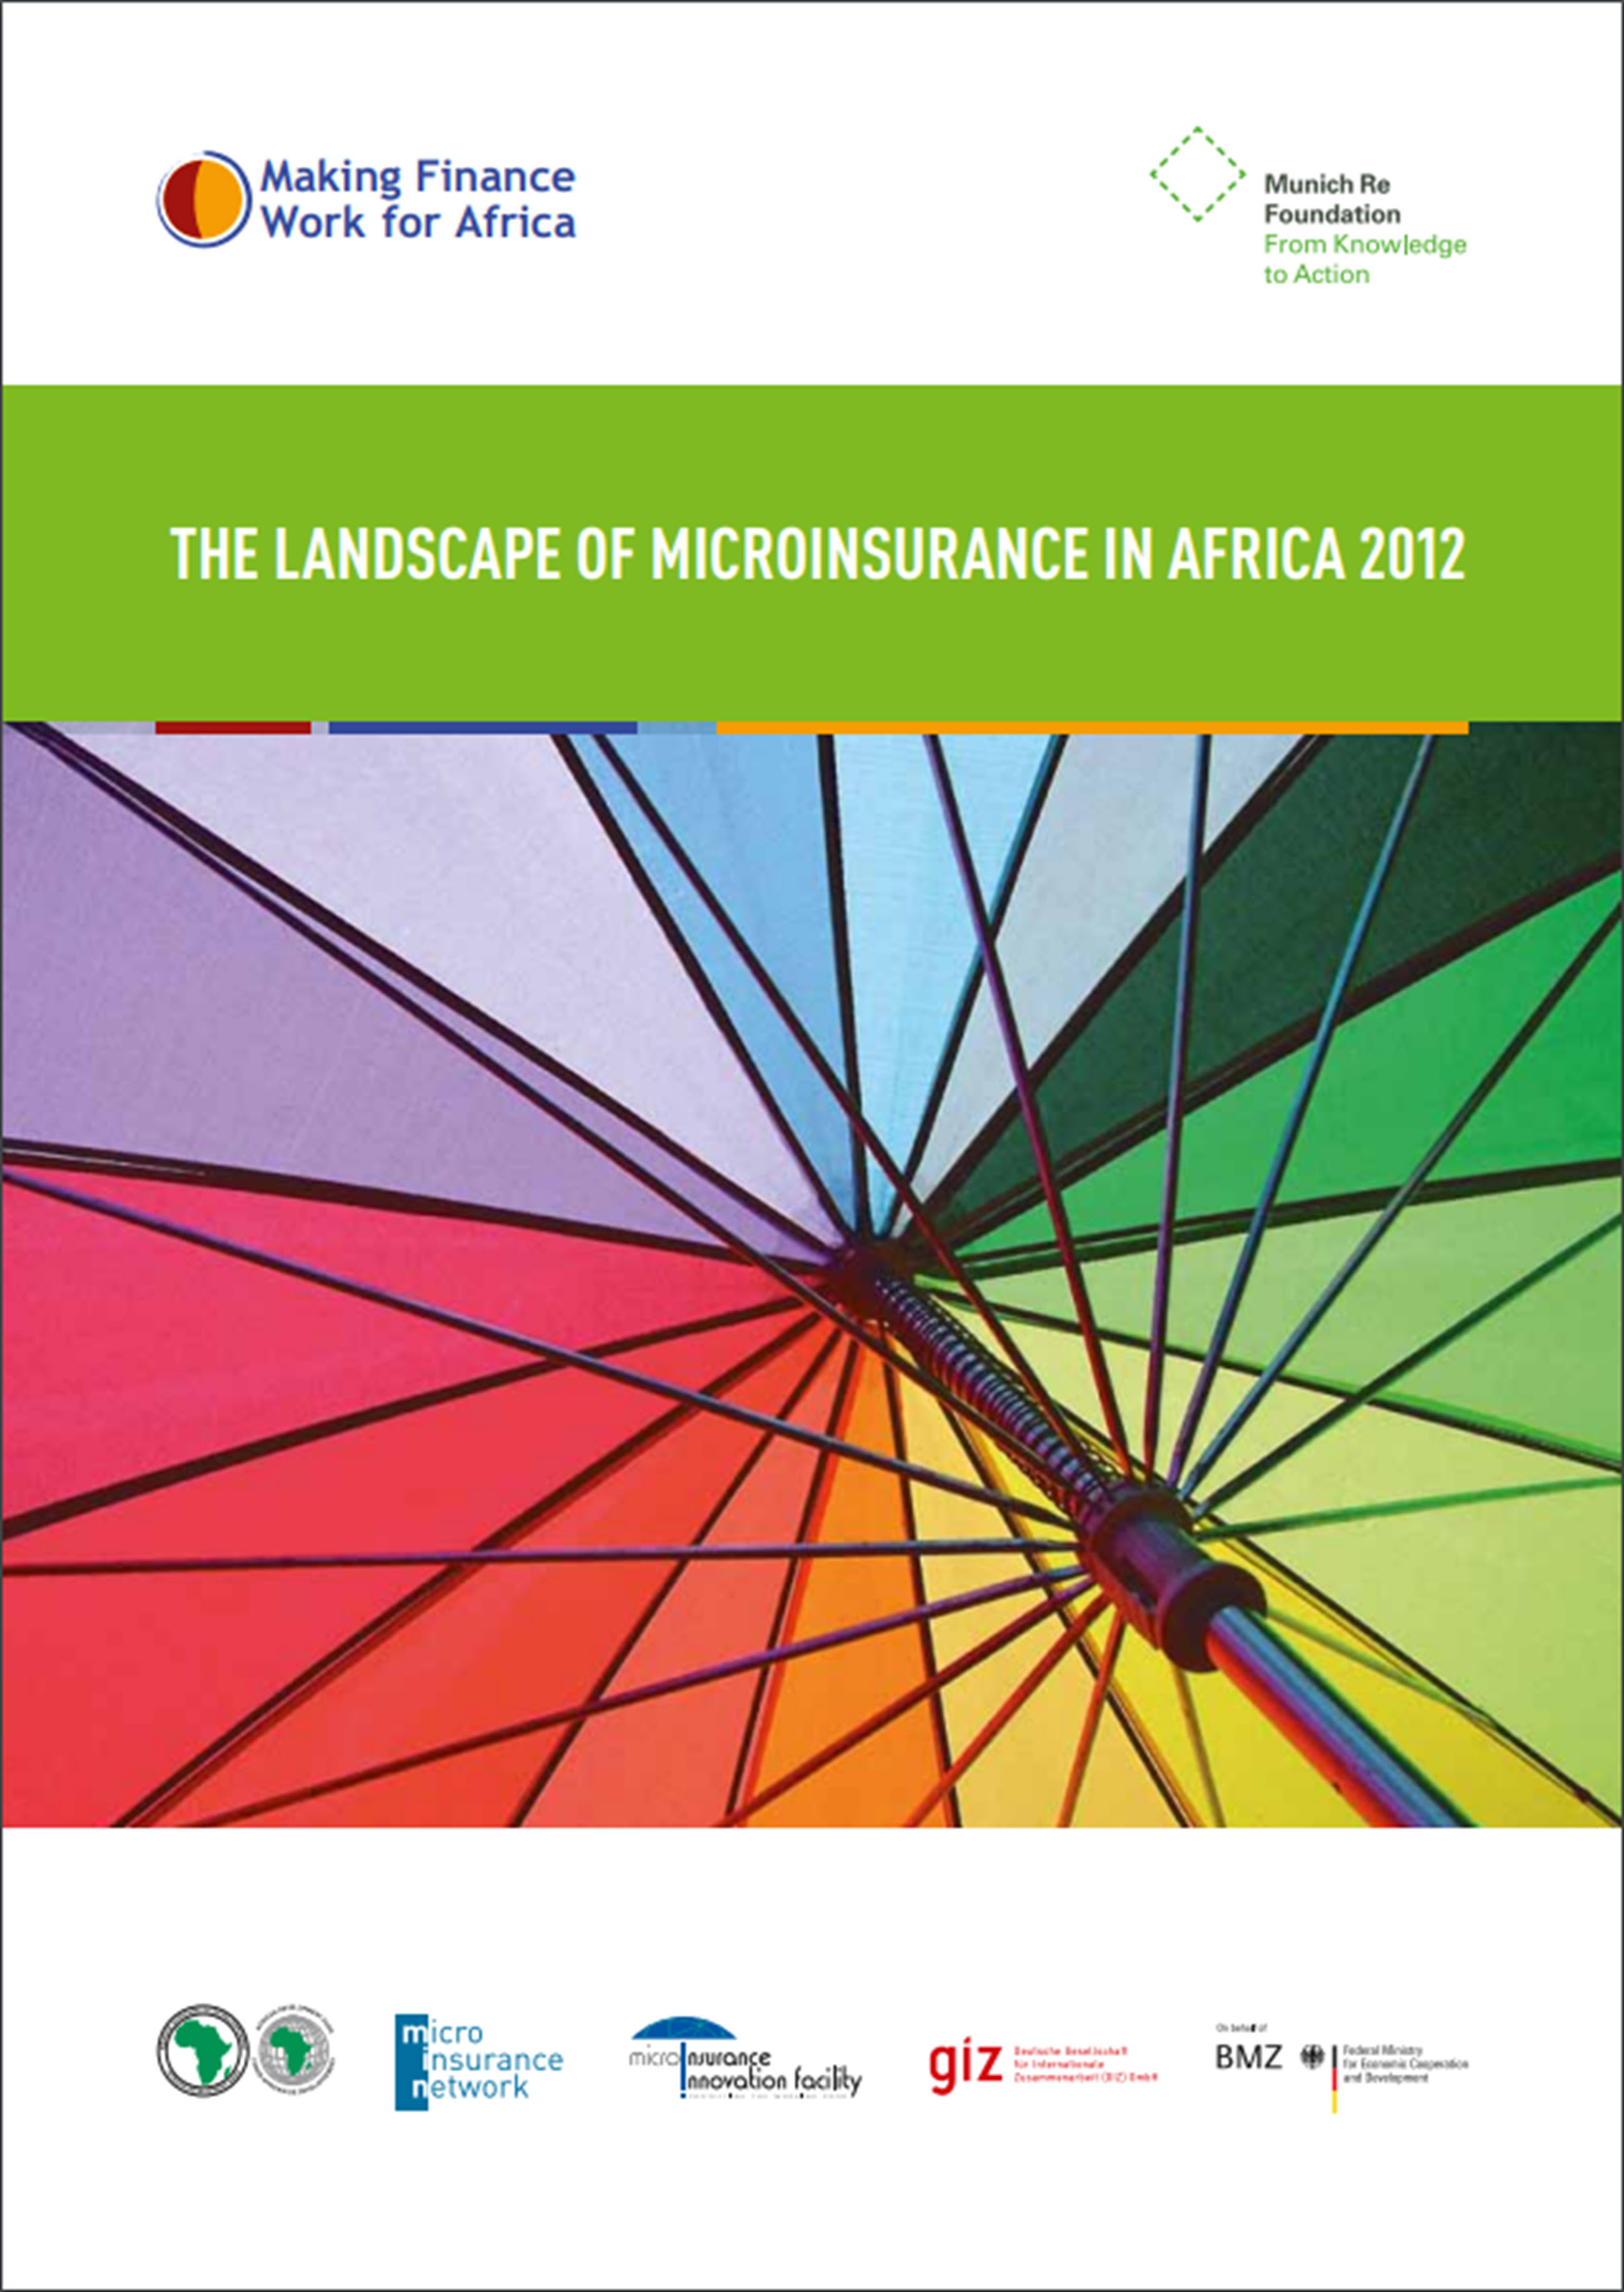 The landscape of microinsurance in Africa